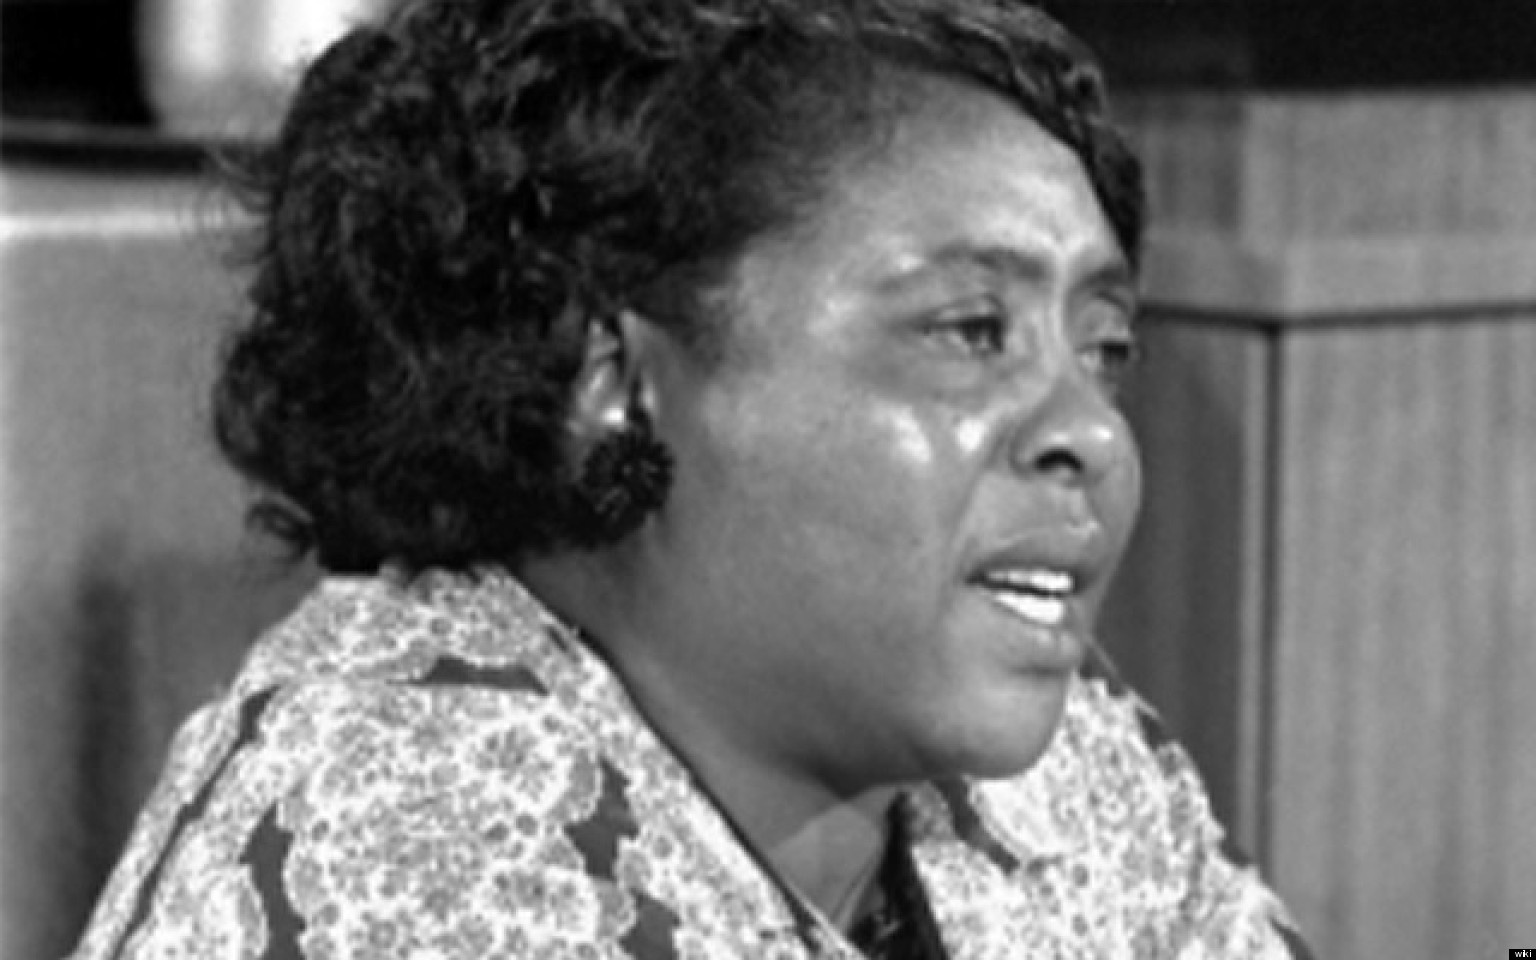 fannie lou hamer Fannie lou hamer is a woman you should know her brave and heroic words were such a paradigm shift in the country's power structure in addressing race relations, that president lyndon b johnson cut in on her live testimony to divert attention away from the convention.